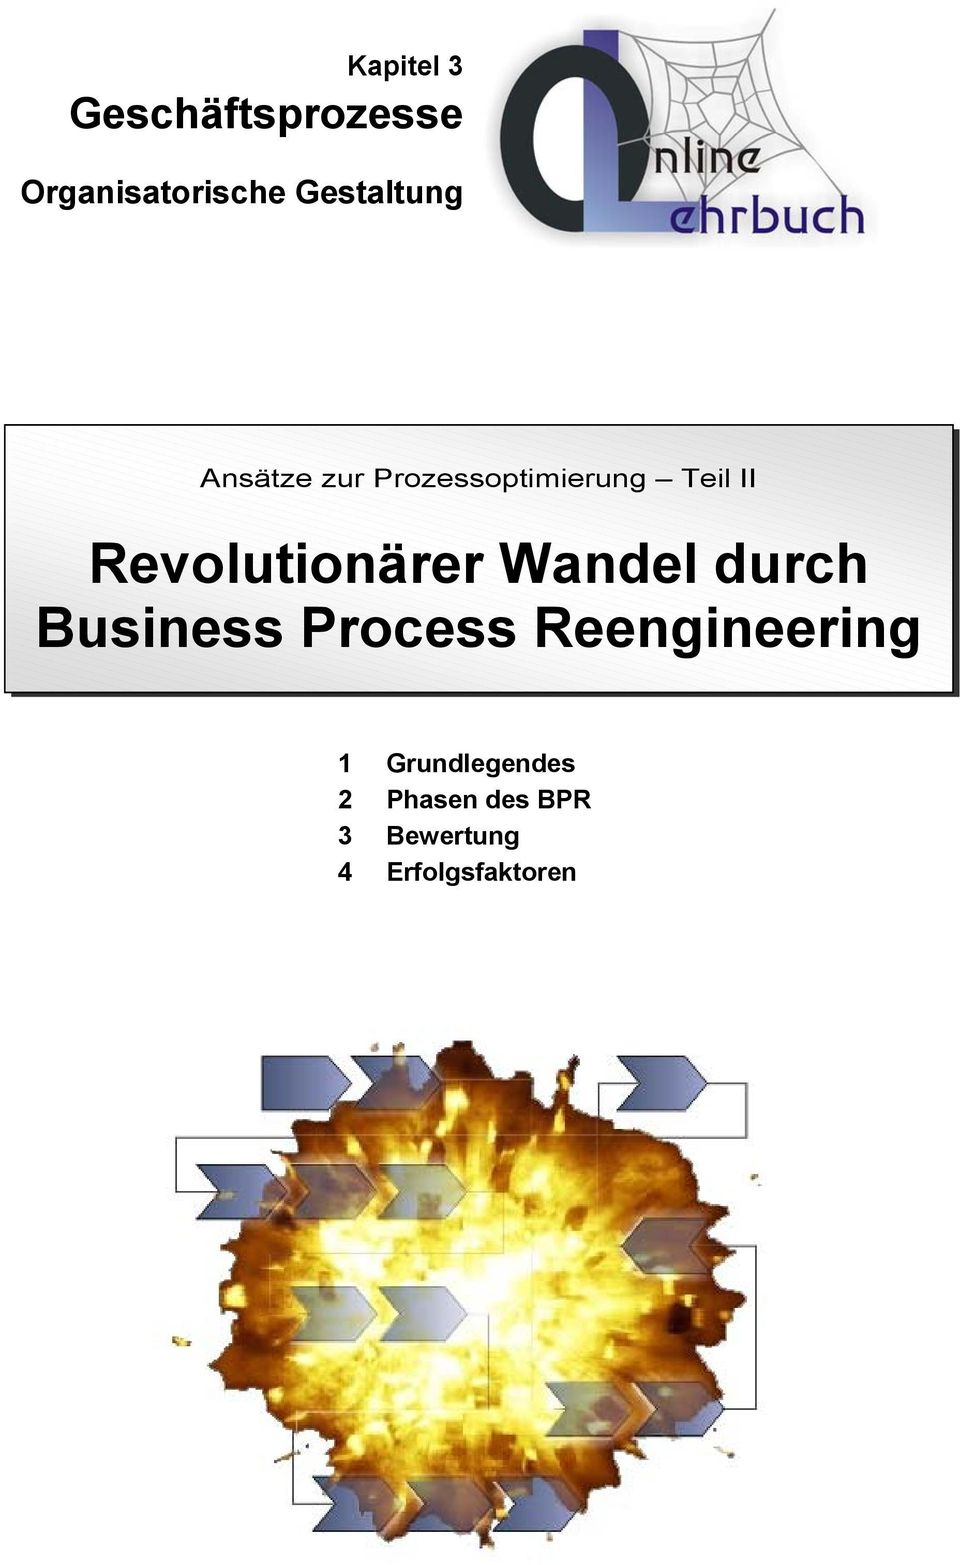 Revolutionärer Wandel durch Business Process